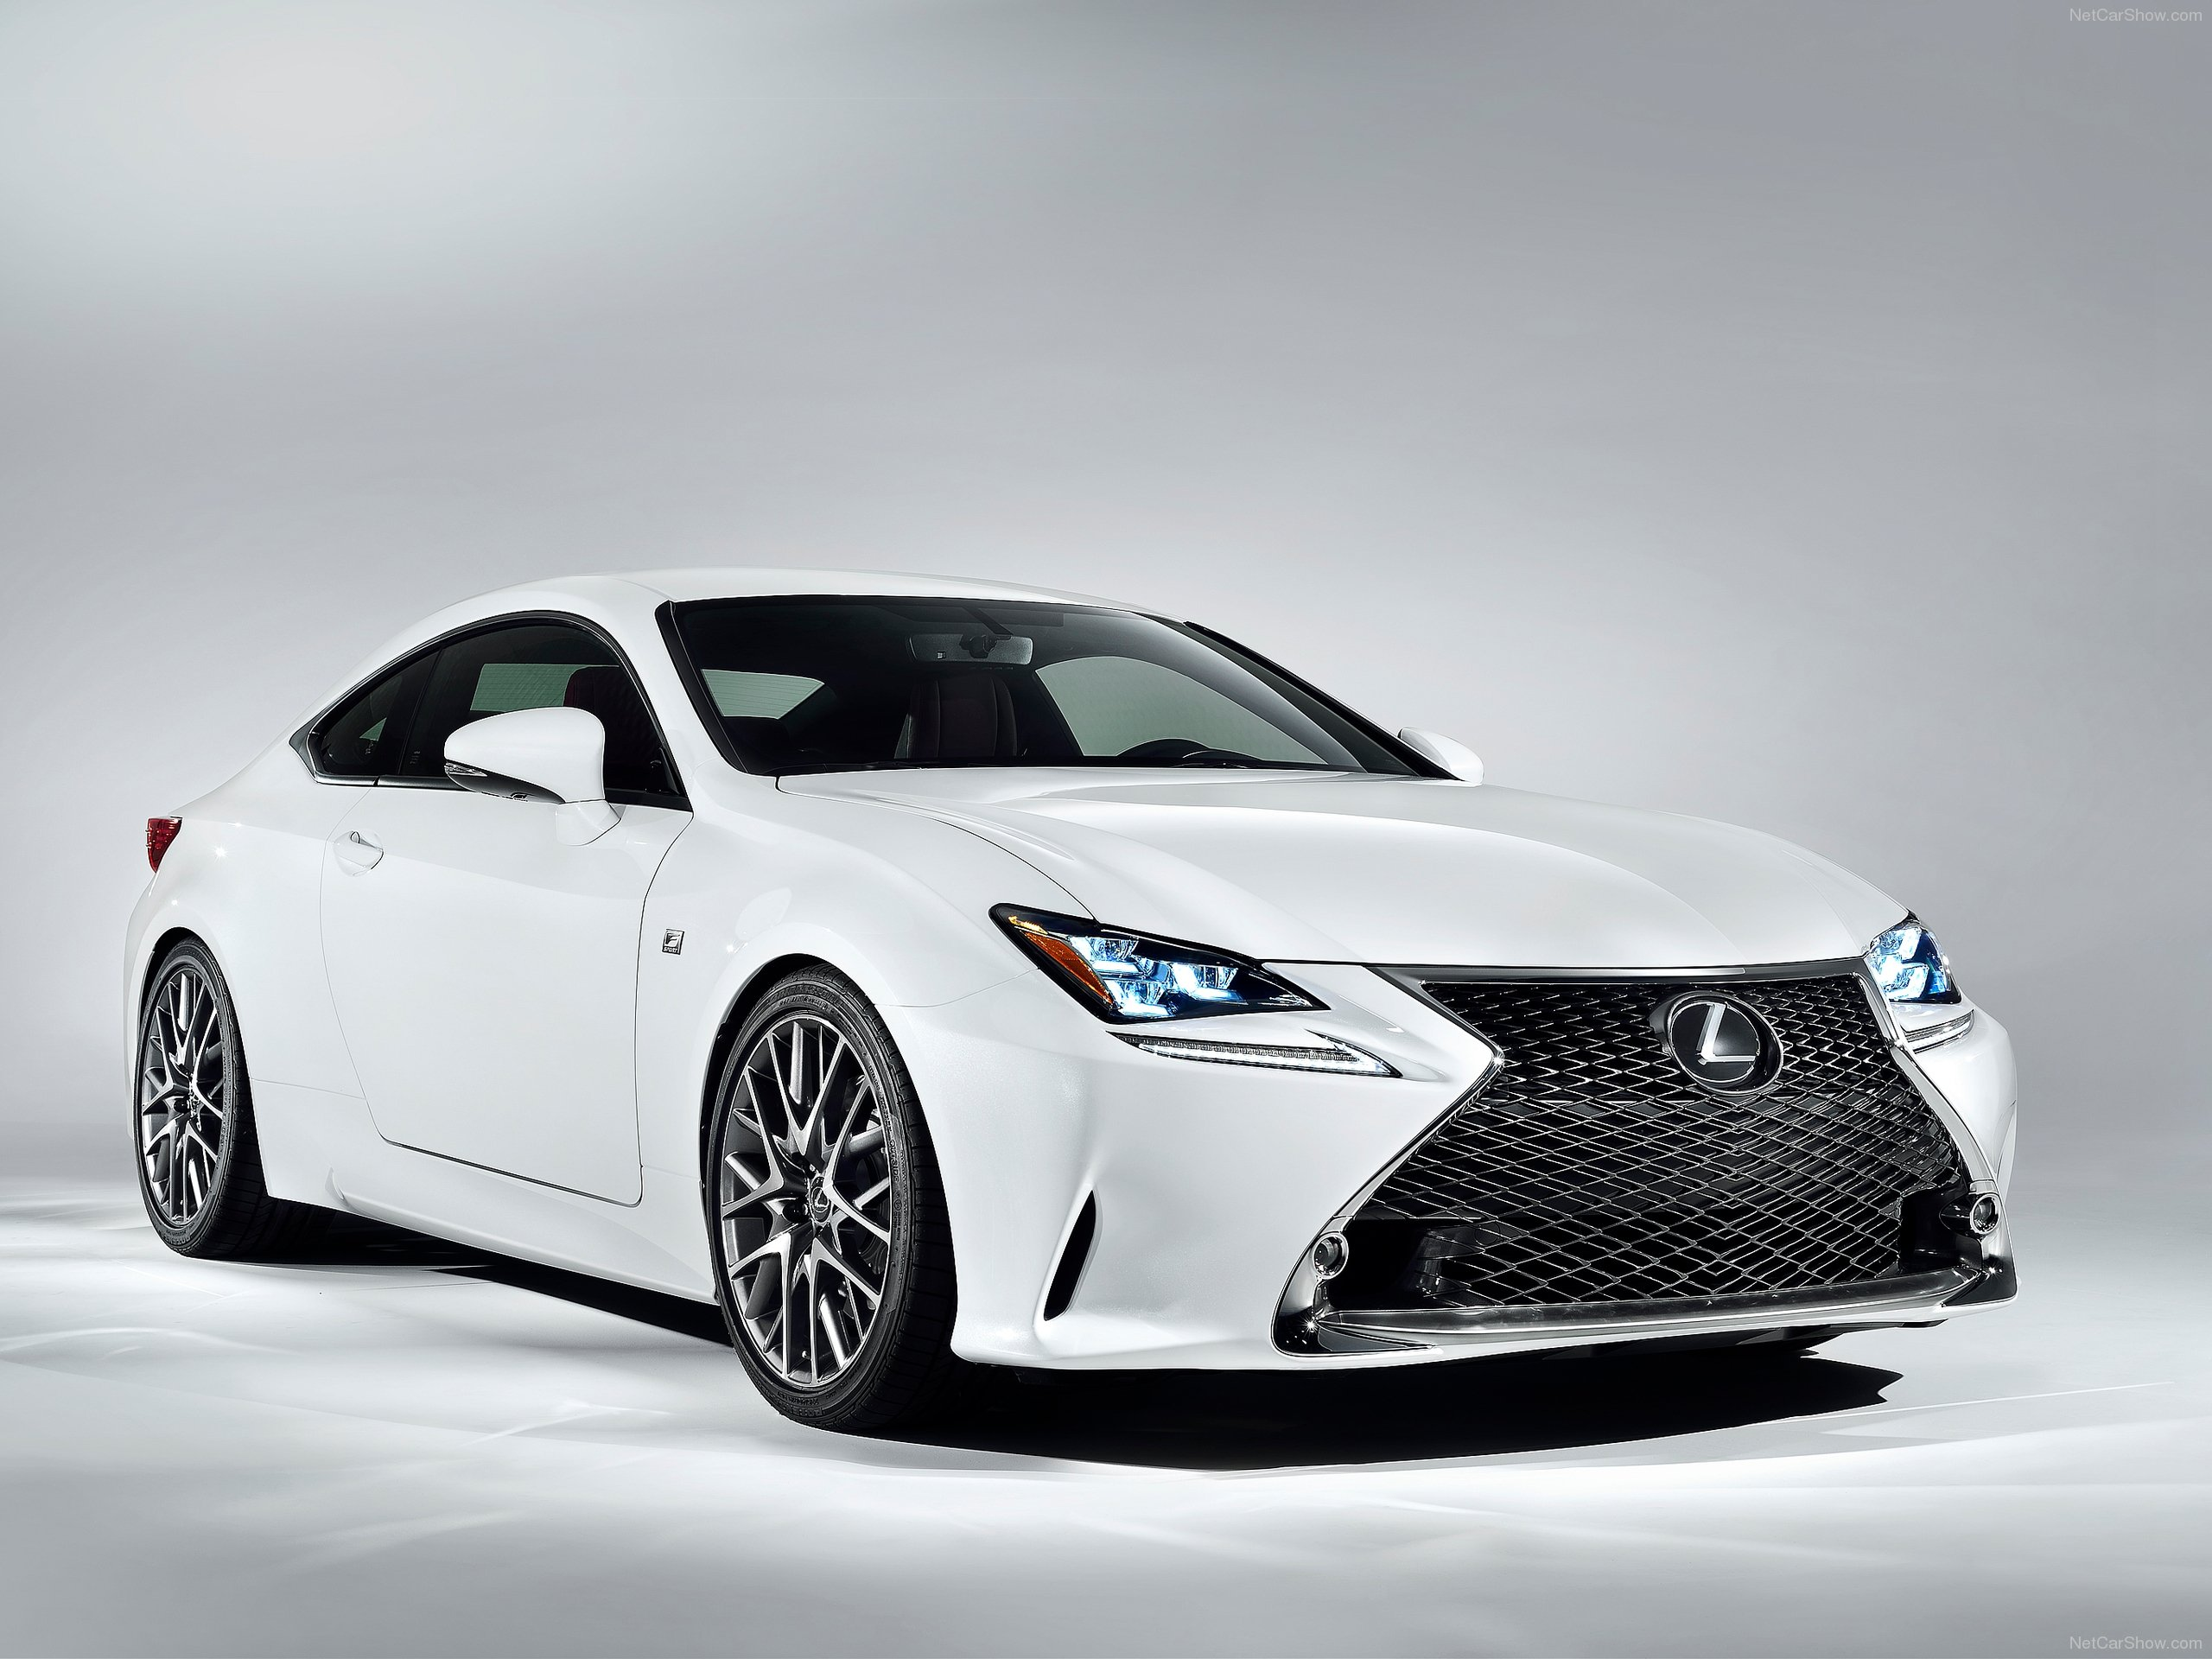 White Lexus Front Look 588.24 Kb